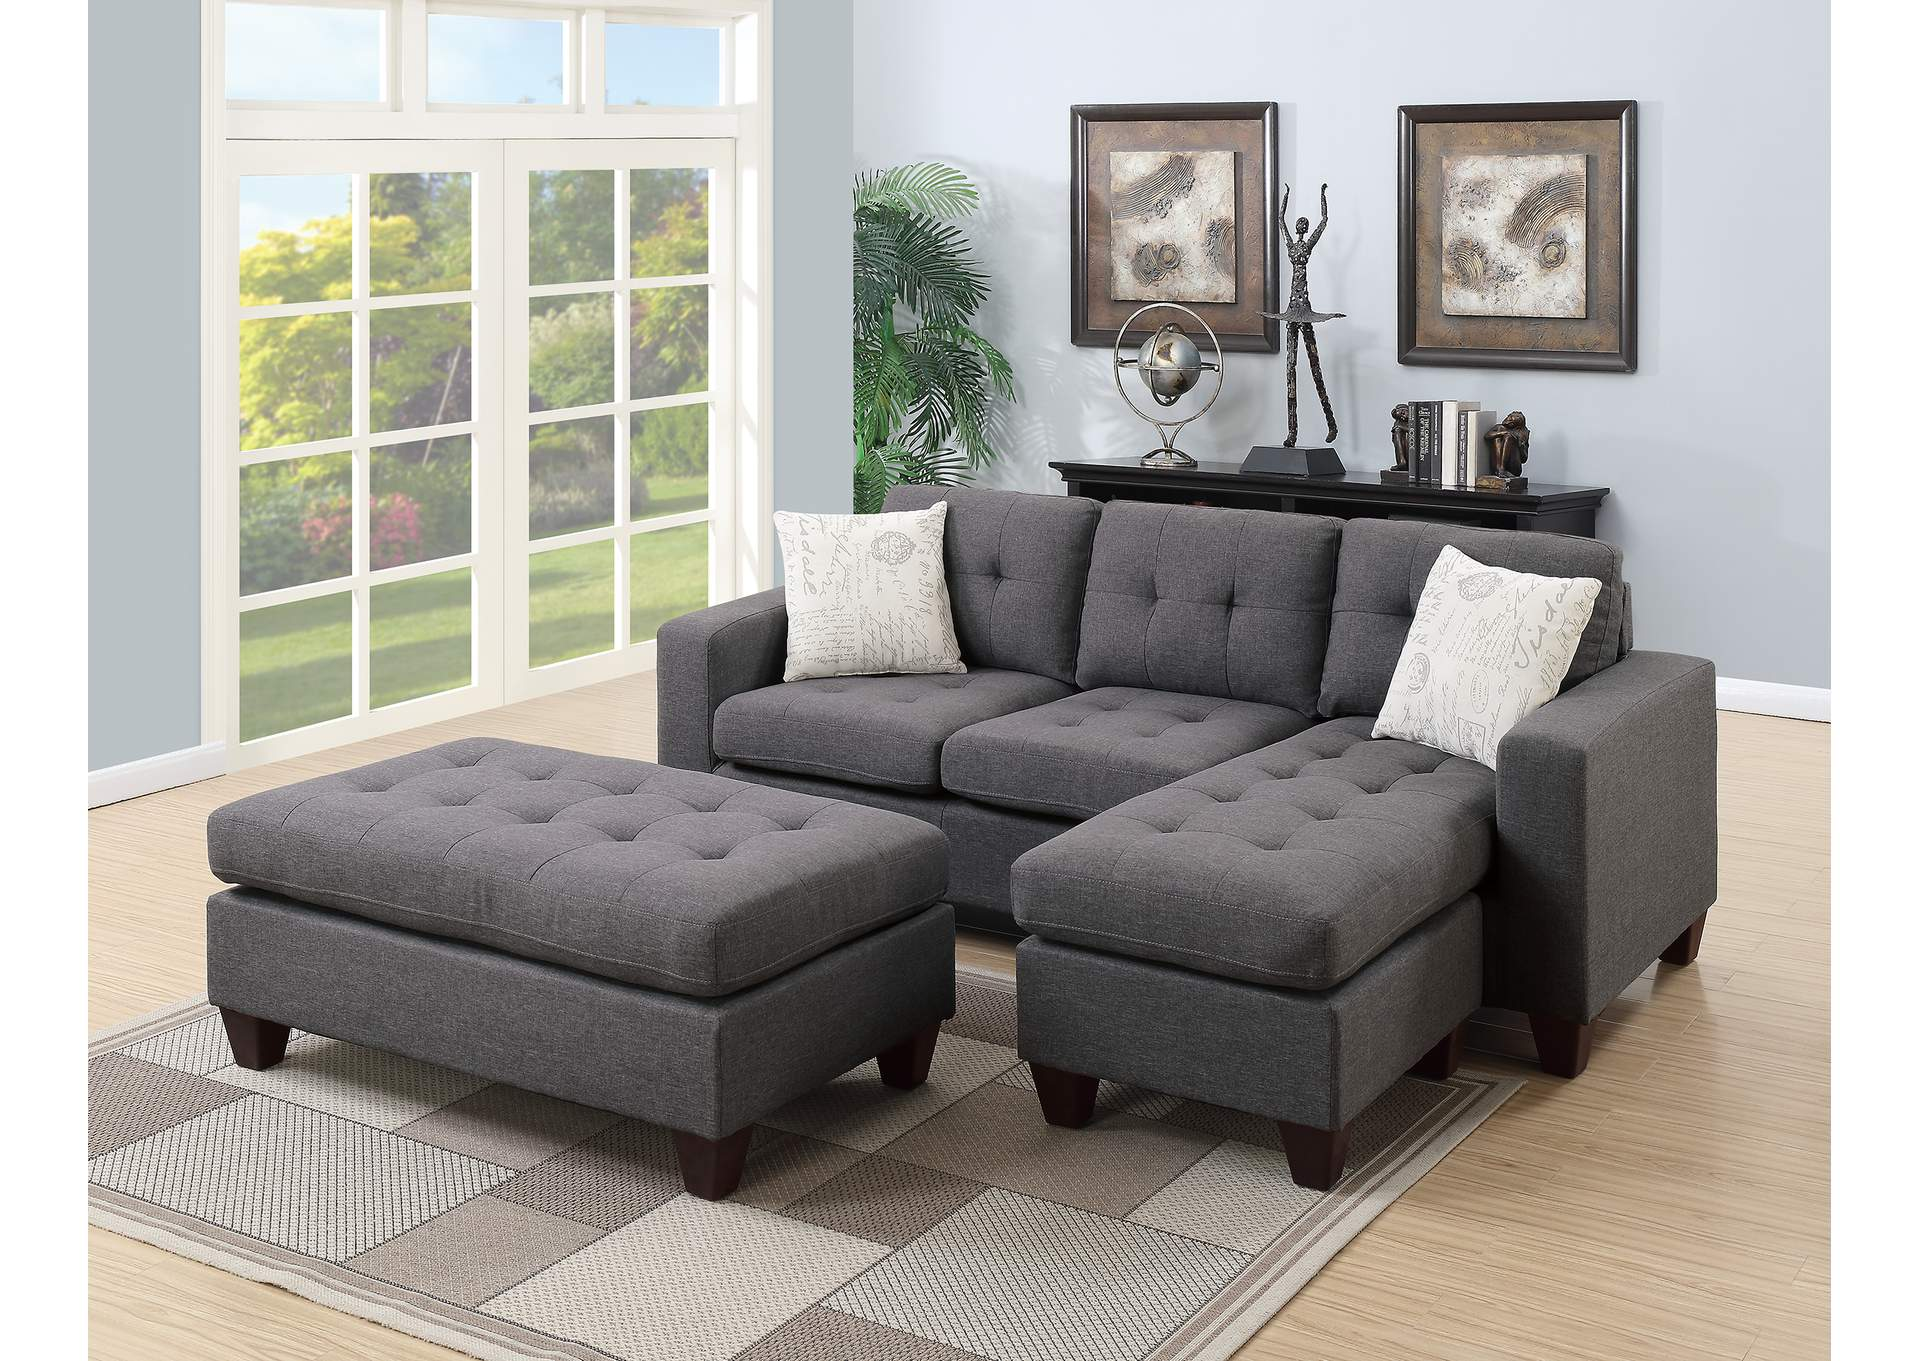 Blue Grey All-In-One Sectional,Poundex